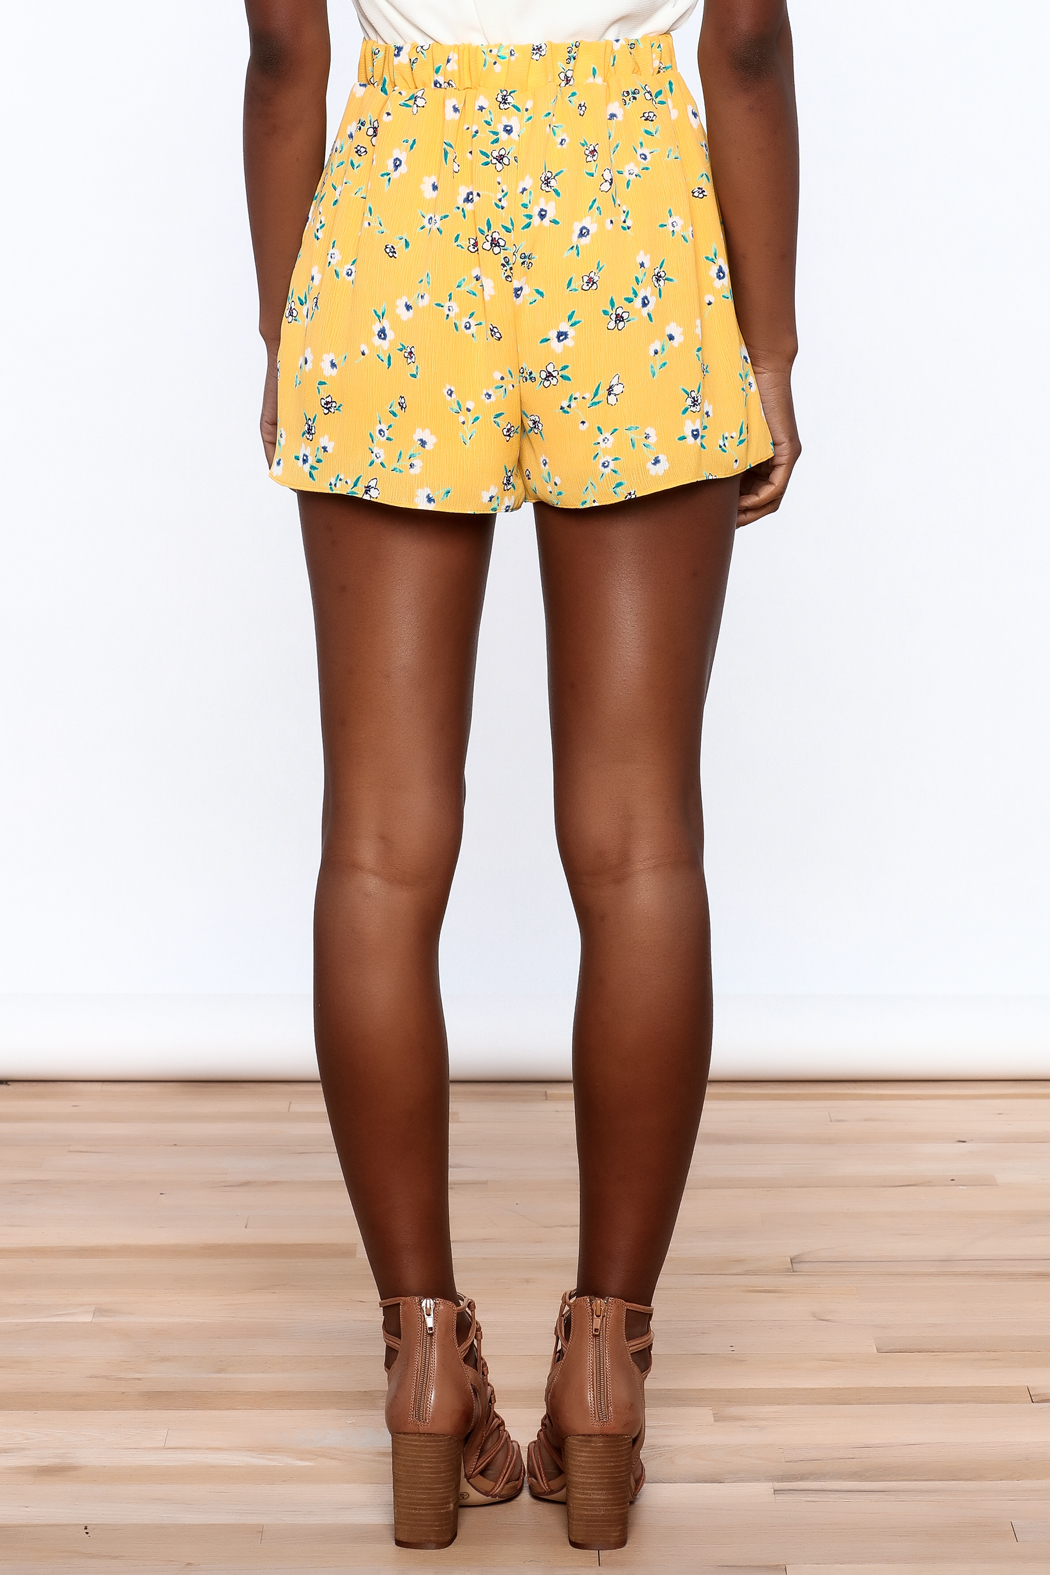 Everly Bright Yellow Floral Shorts - Back Cropped Image